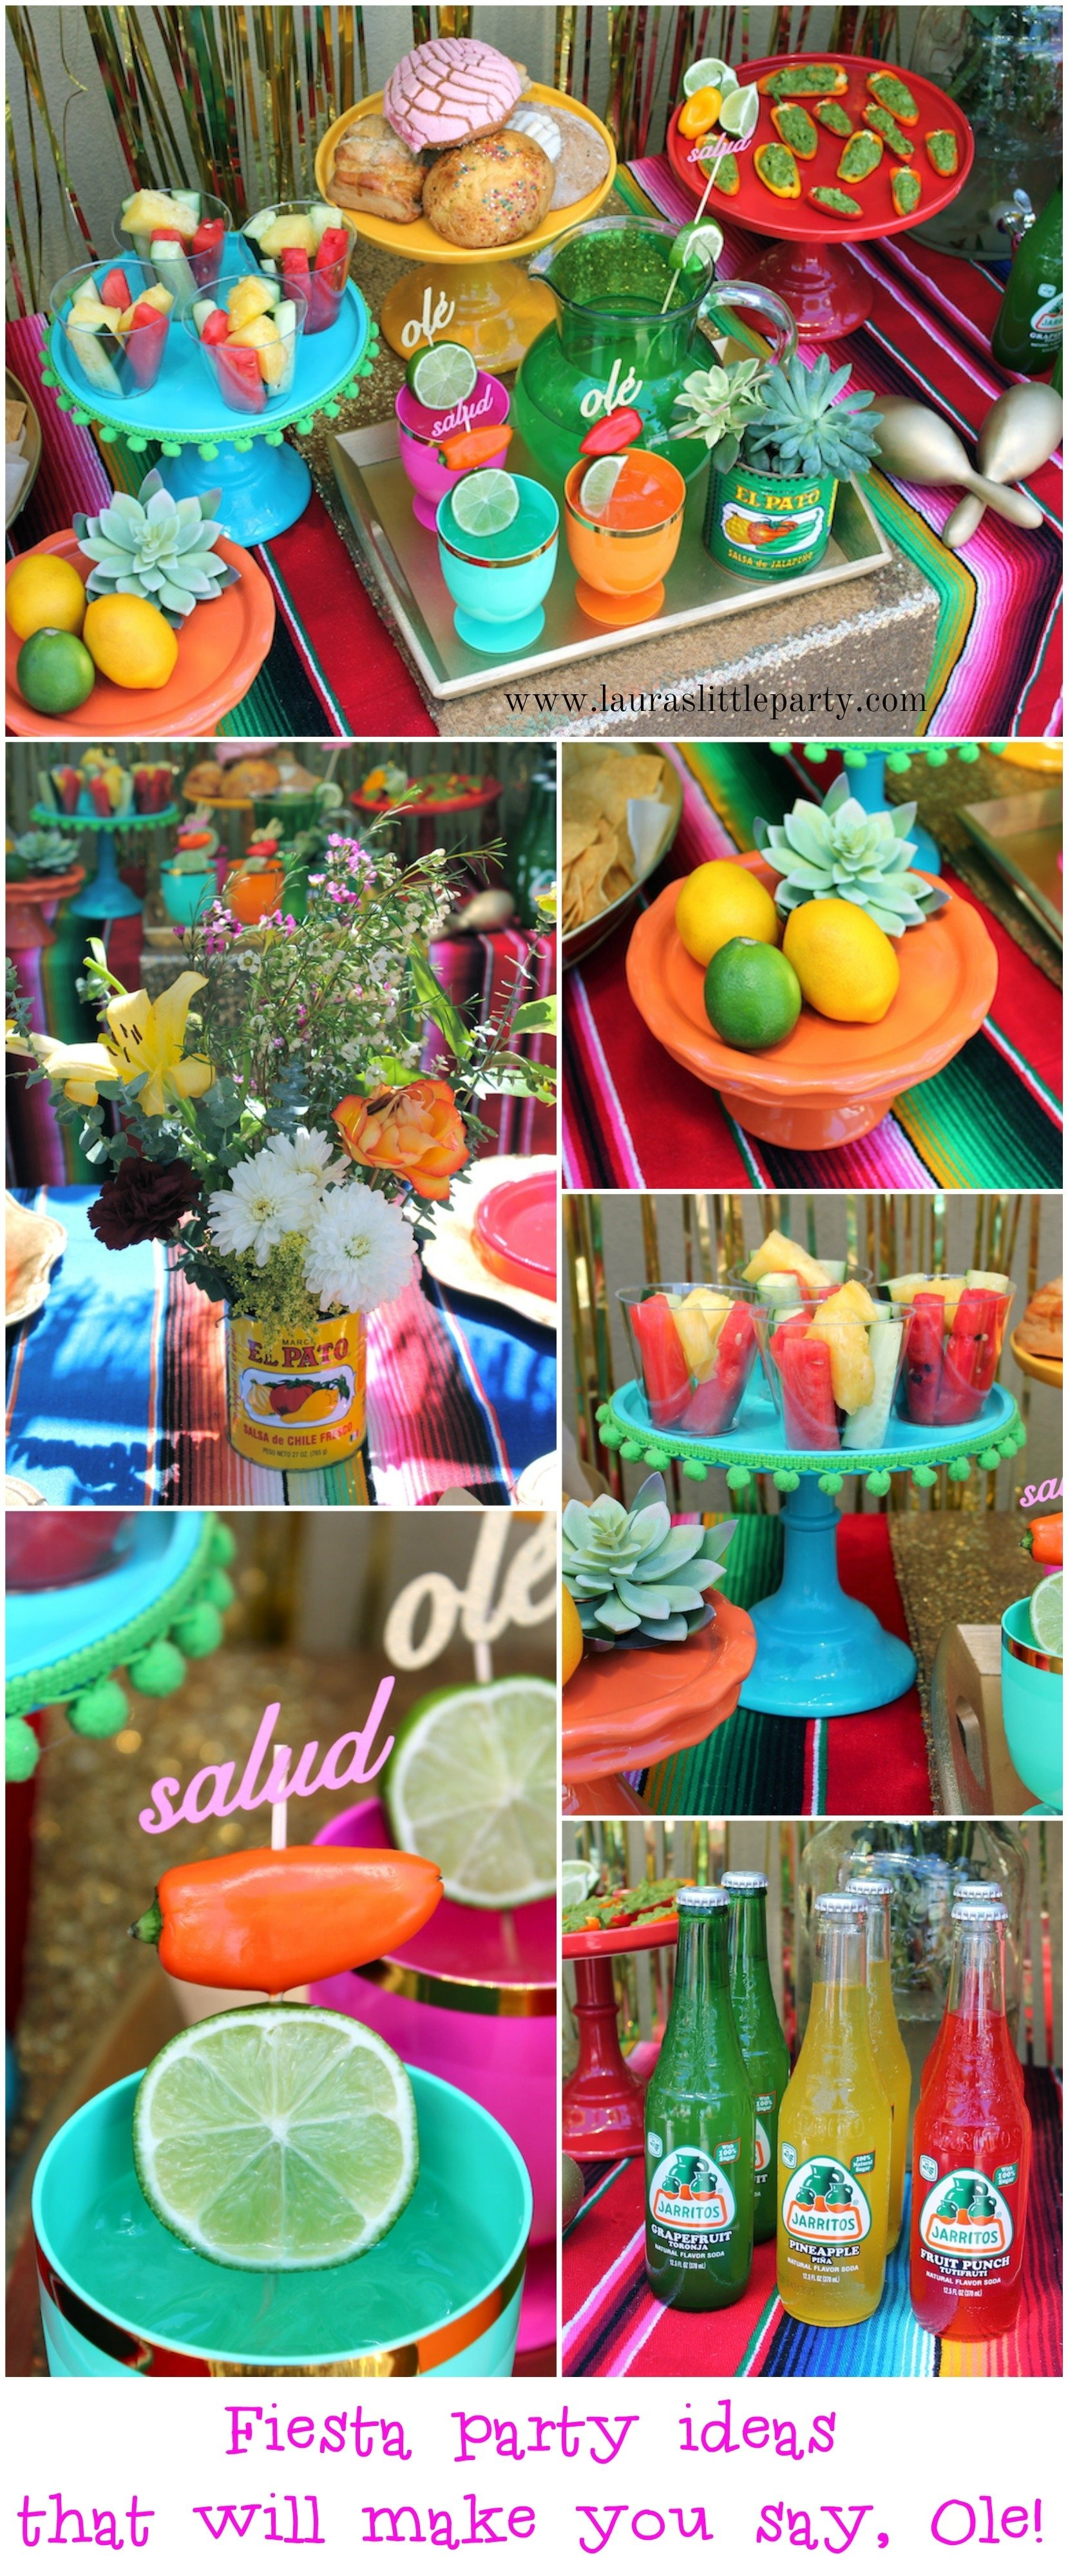 10 Unique Fiesta Party Ideas For Adults see all the festive party ideas from lauras little party bold 1 2020